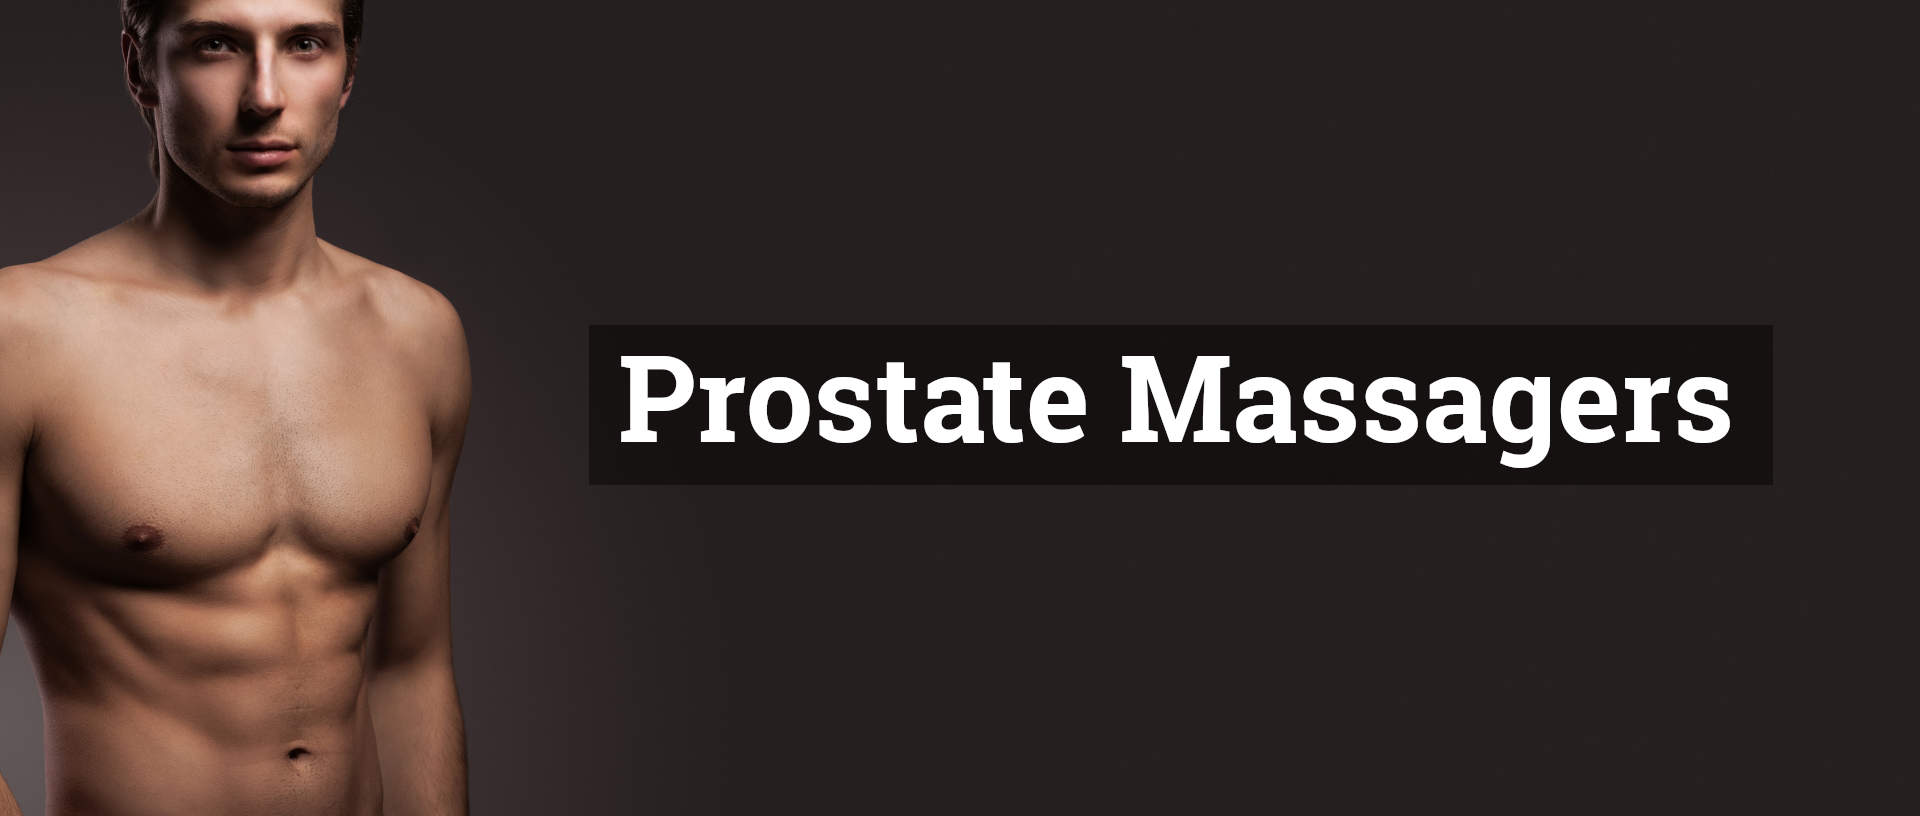 Prostate Massager toy reviews - Prostate Massager Guide